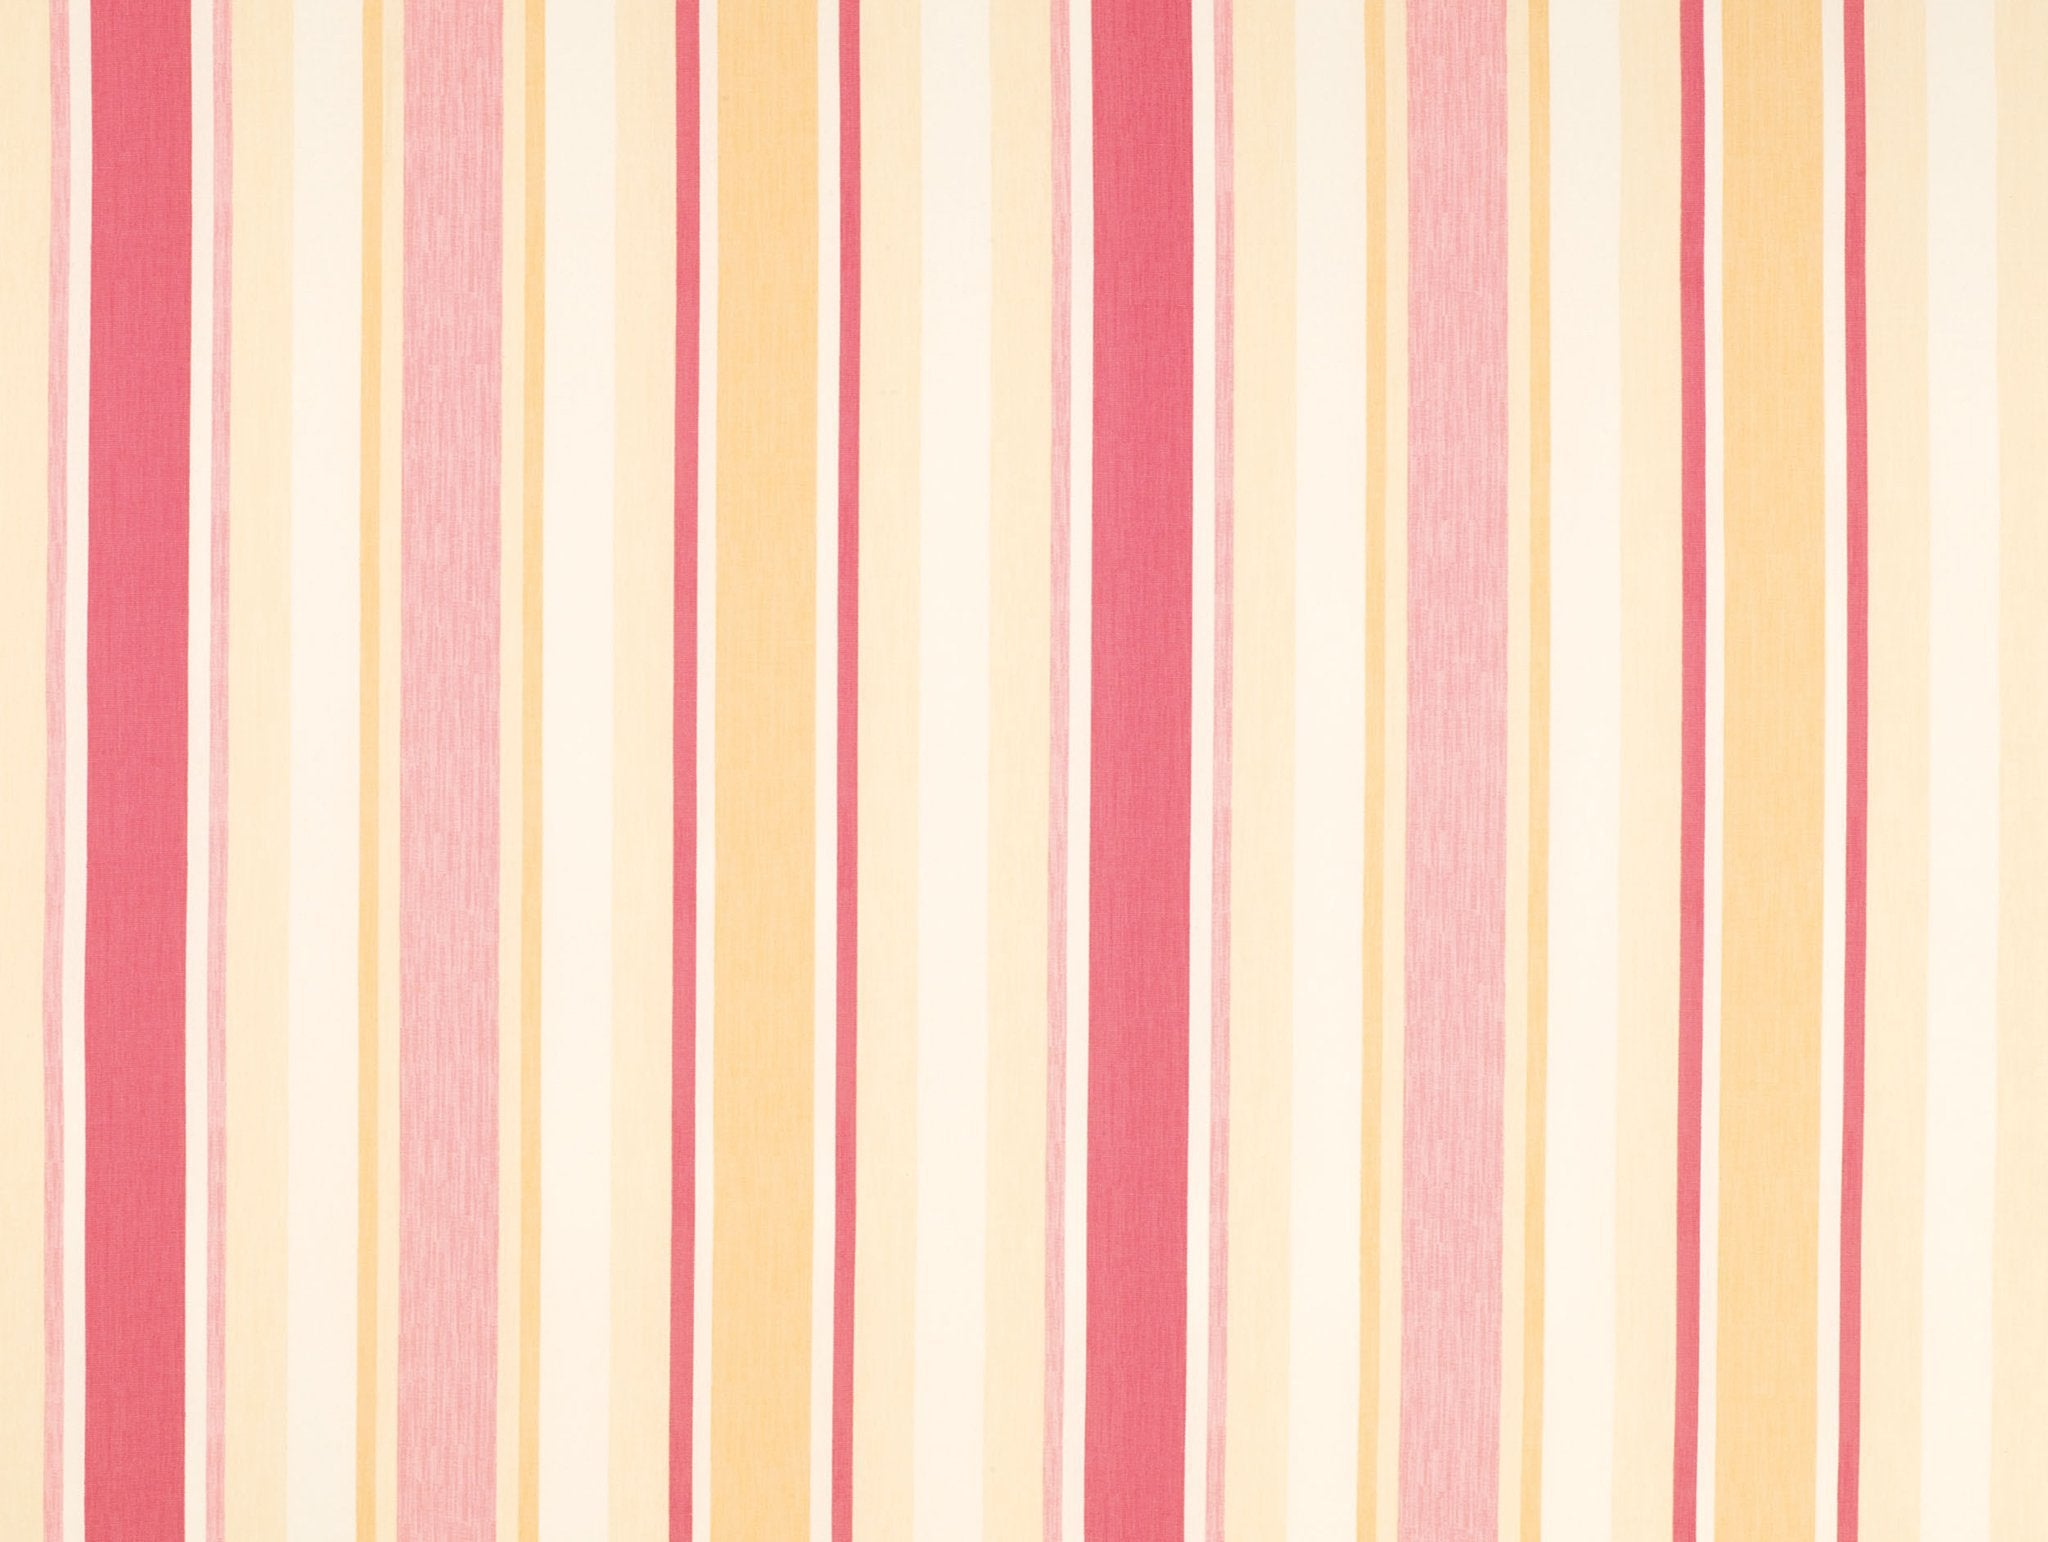 Ύφασμα Awning Pink Grapefruit